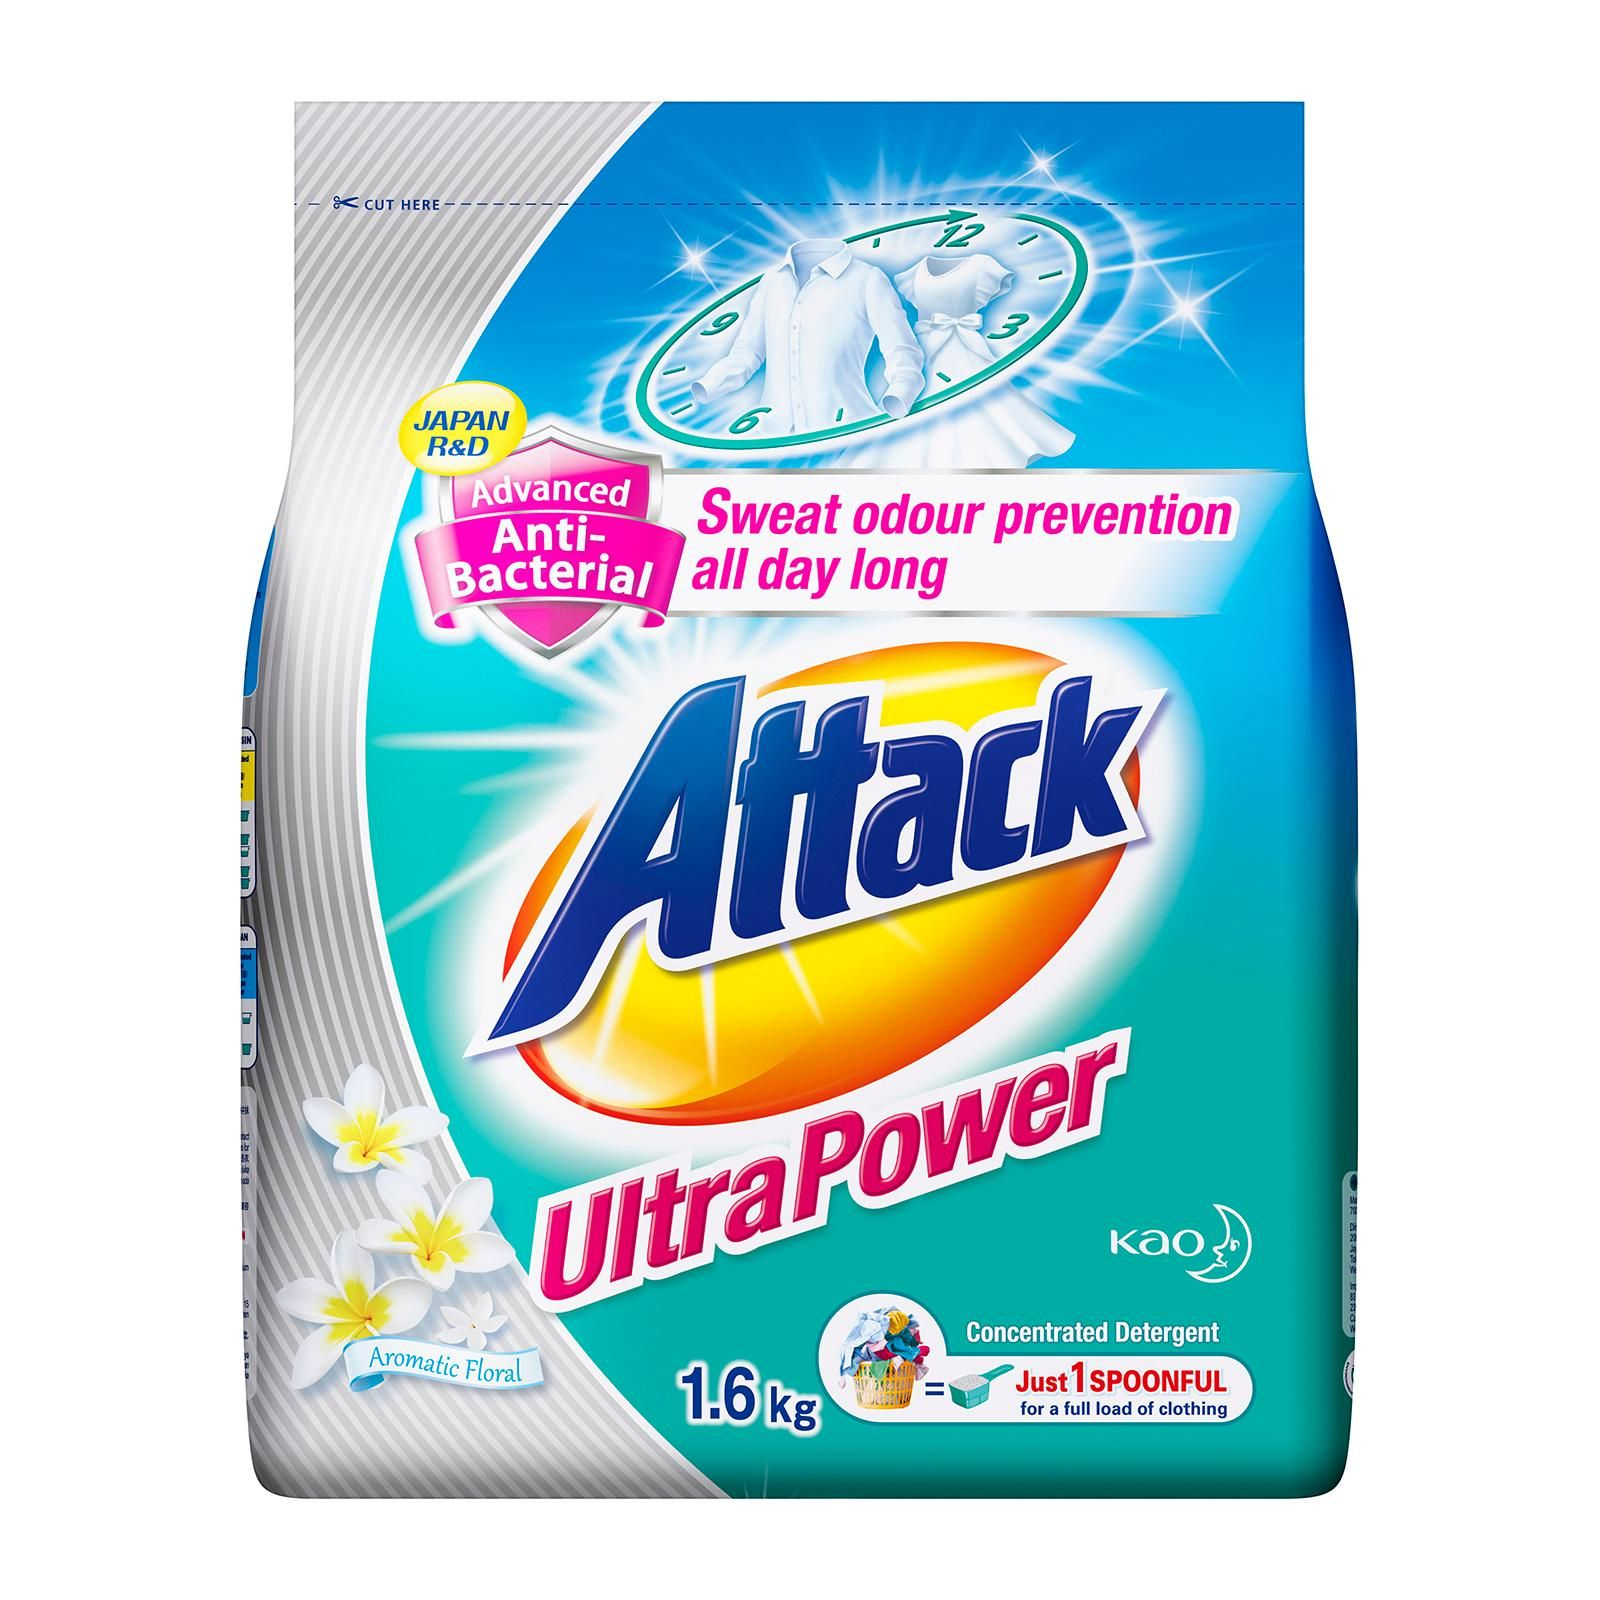 Attack Ultra Power Laundry Detergent Laundry Detergent Brands